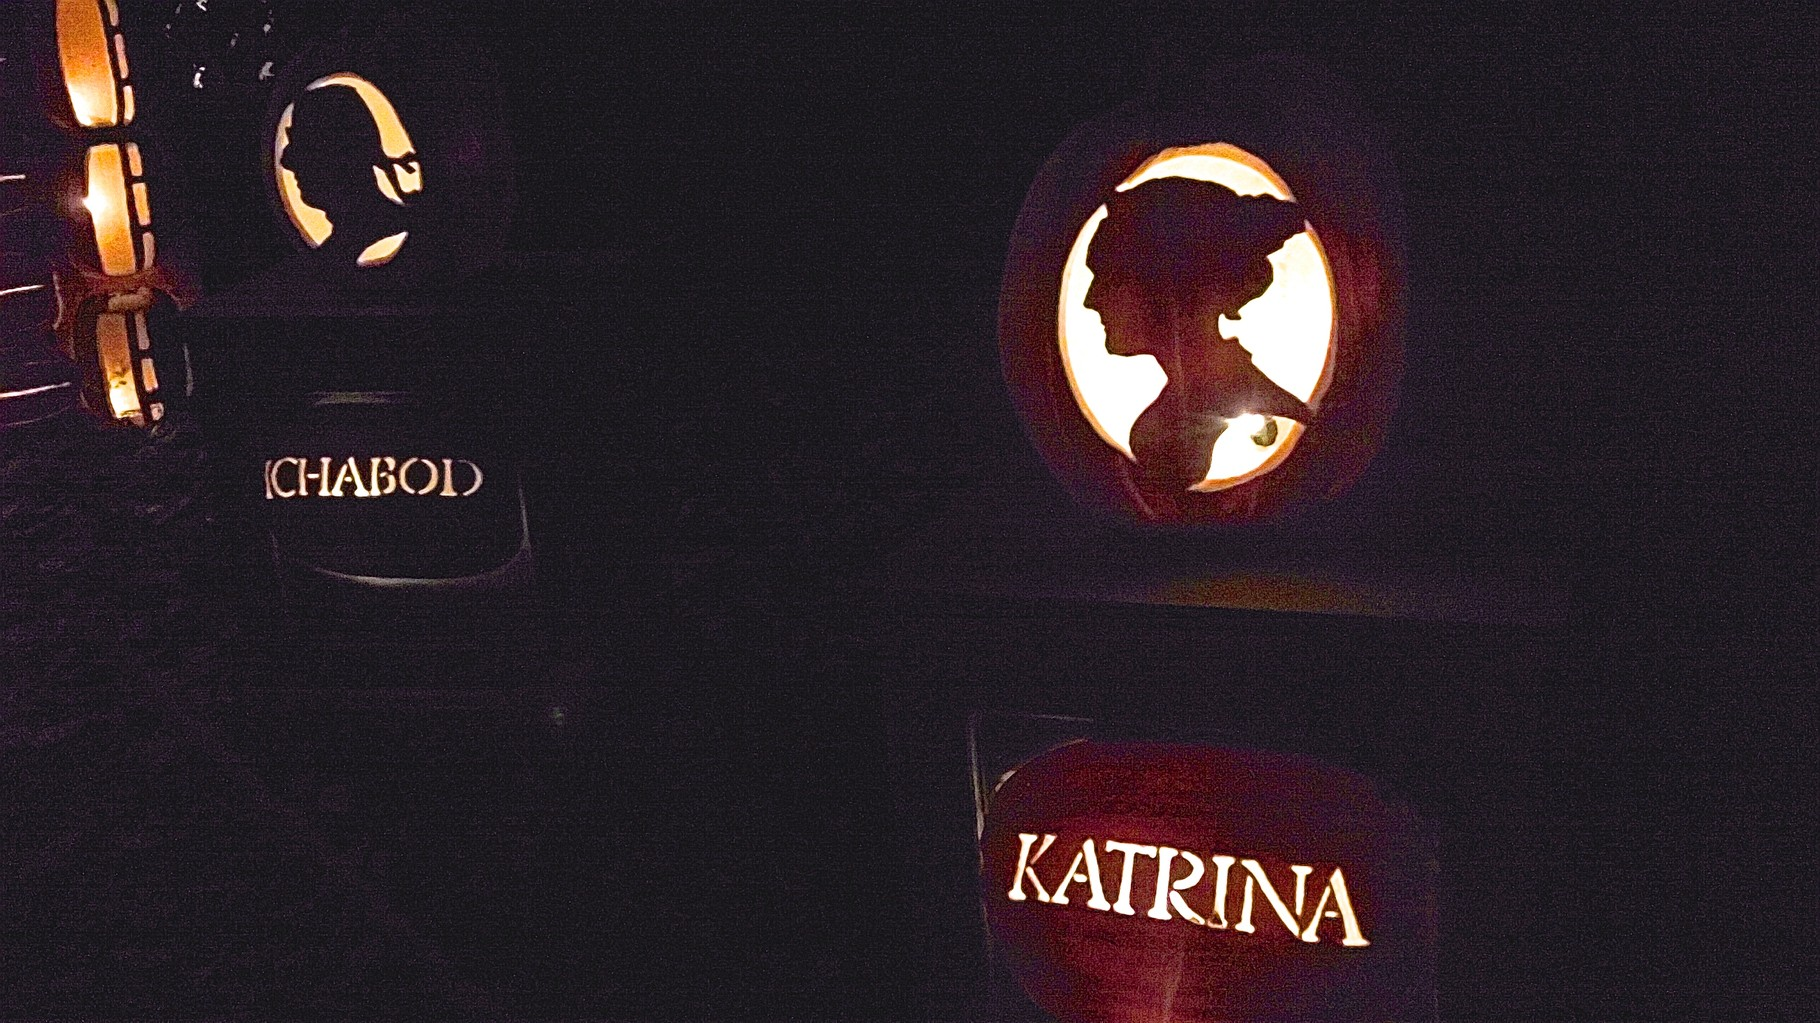 Ichabod and Katrina live on, carved in pumpkins